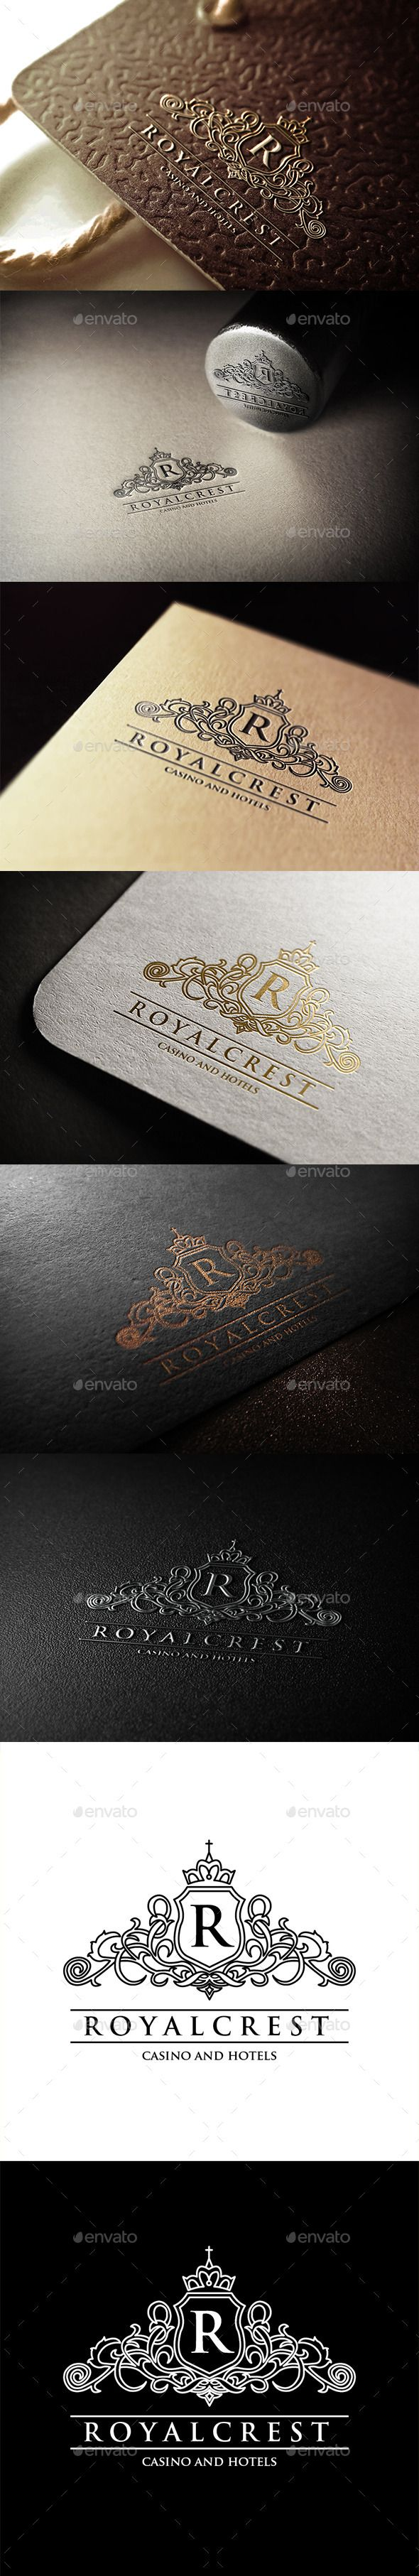 Royal Crest Hotels and Casino Logo Template #design #logotype Download: http://graphicriver.net/item/royal-crest-hotels-and-casino-logo/11257581?ref=ksioks